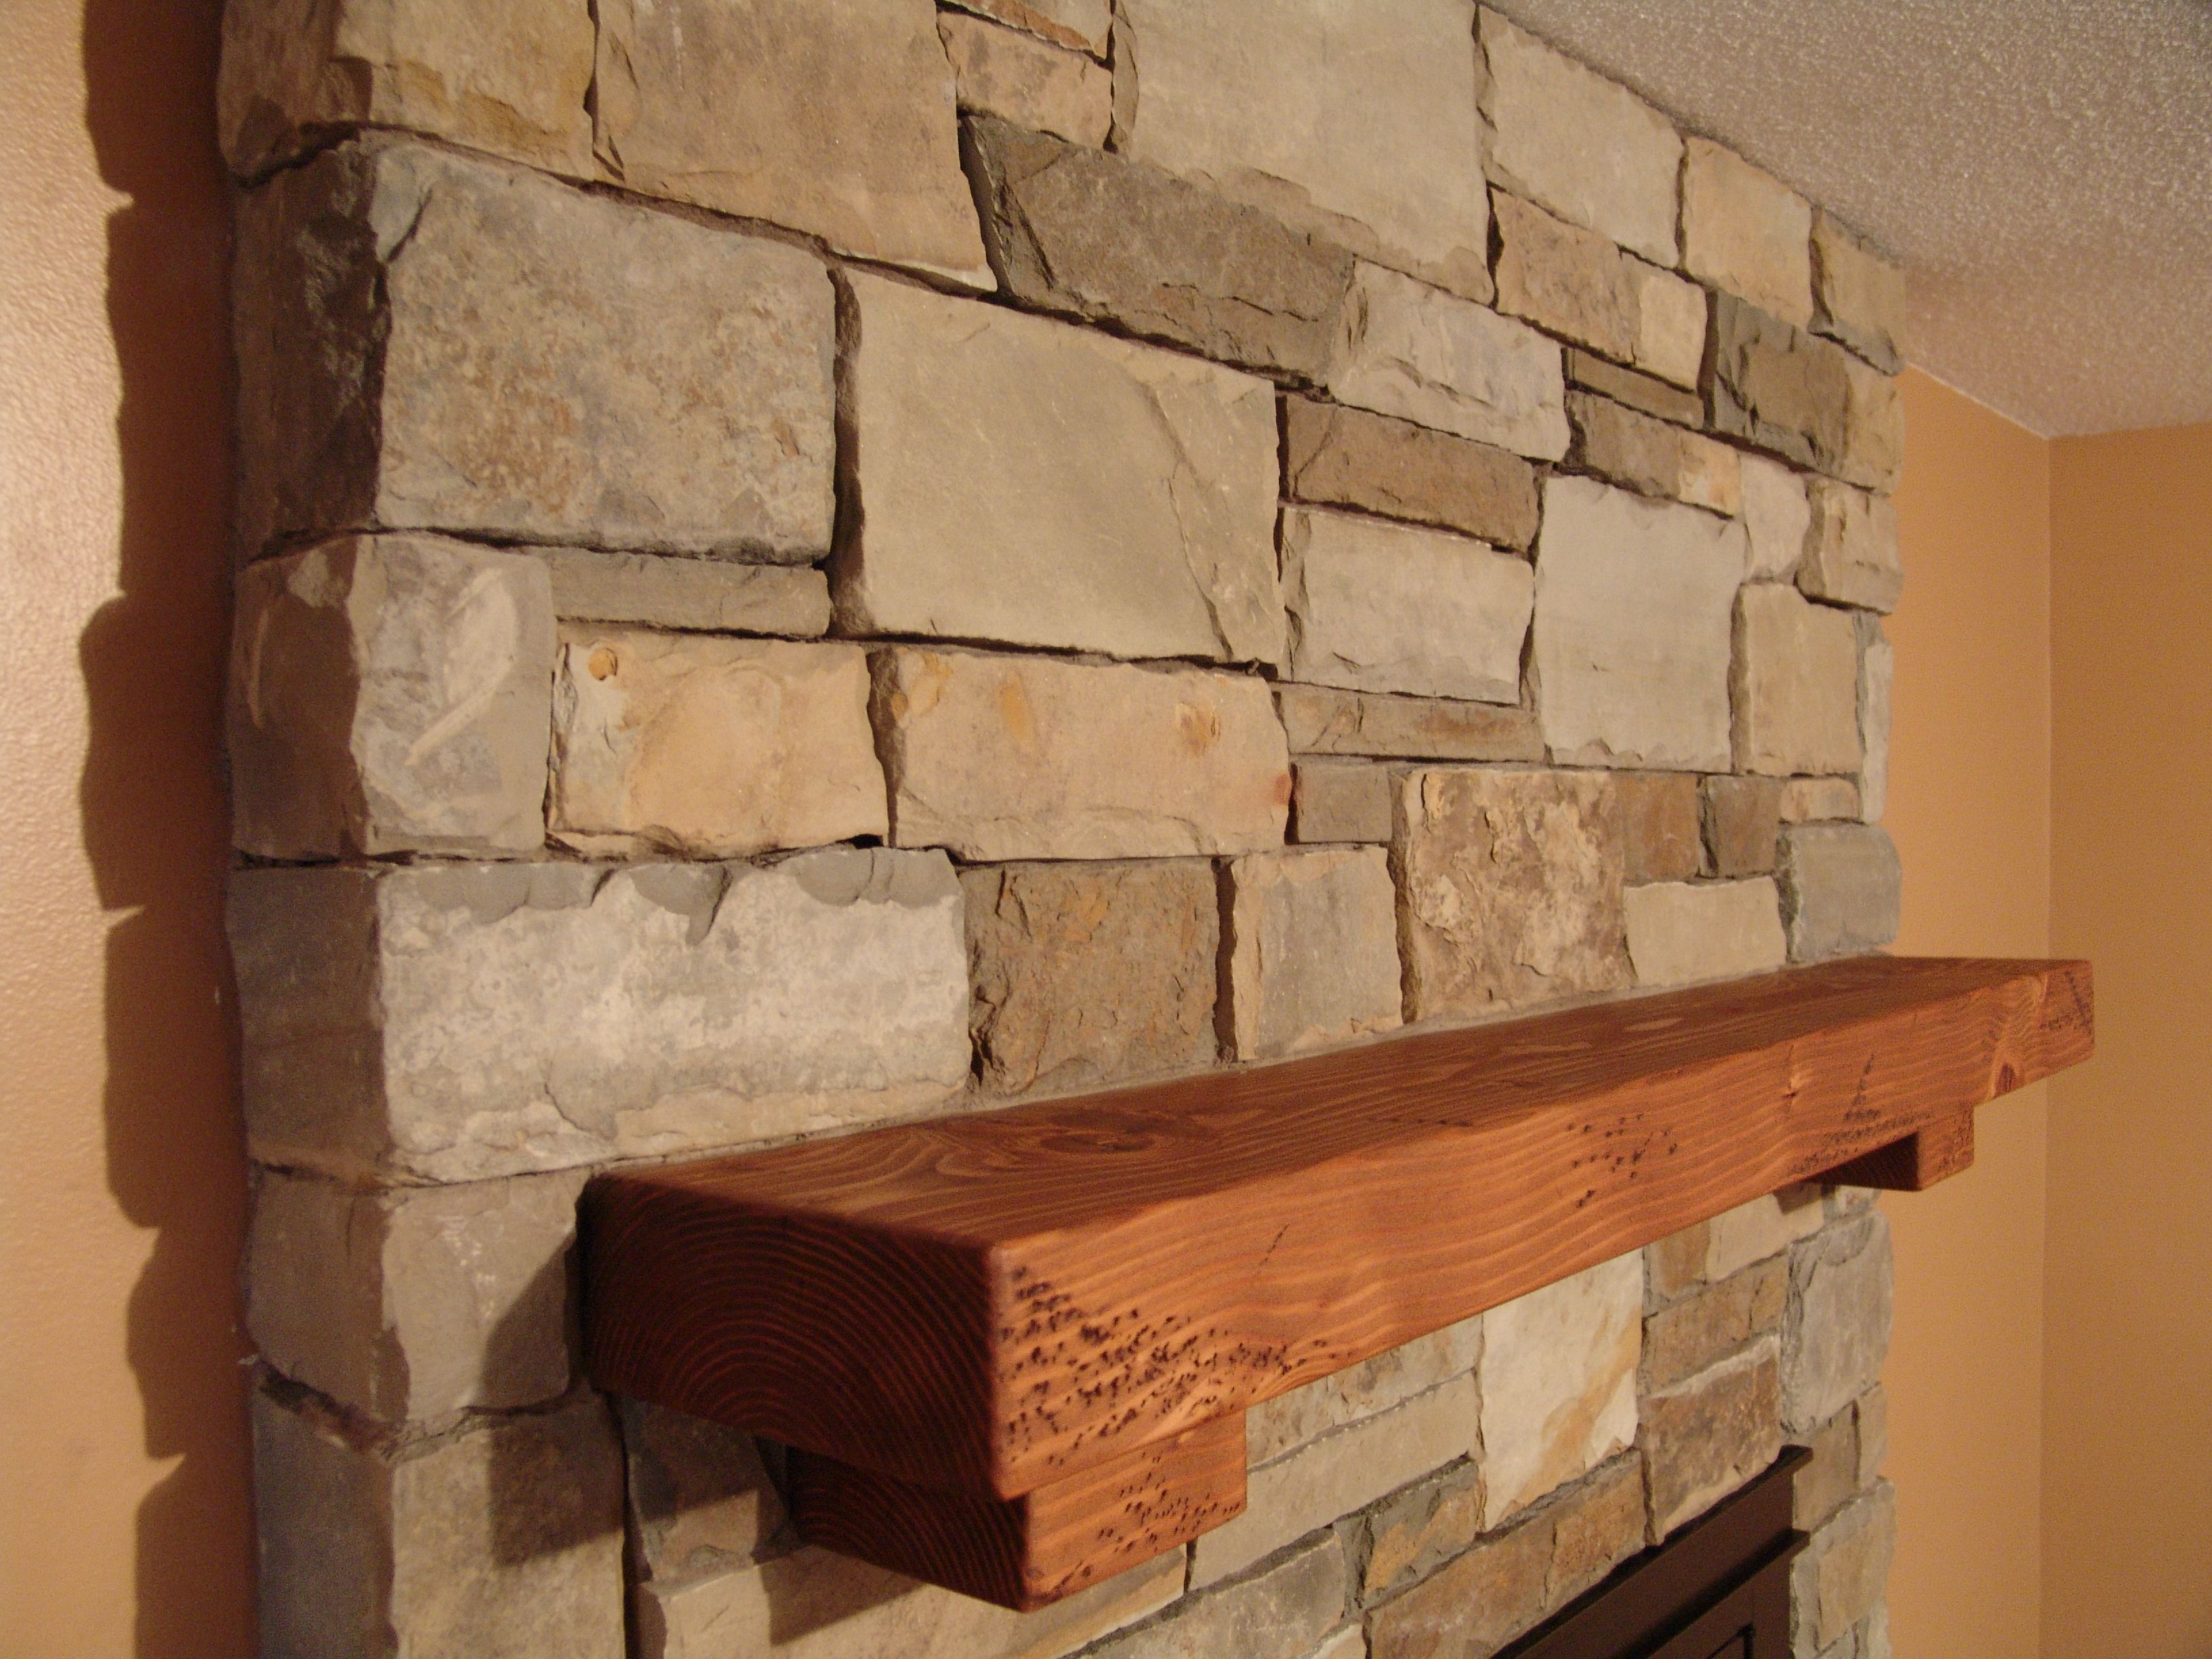 Stone For Fireplaces cultured stone, remodel, basement, fireplace, tight stacked